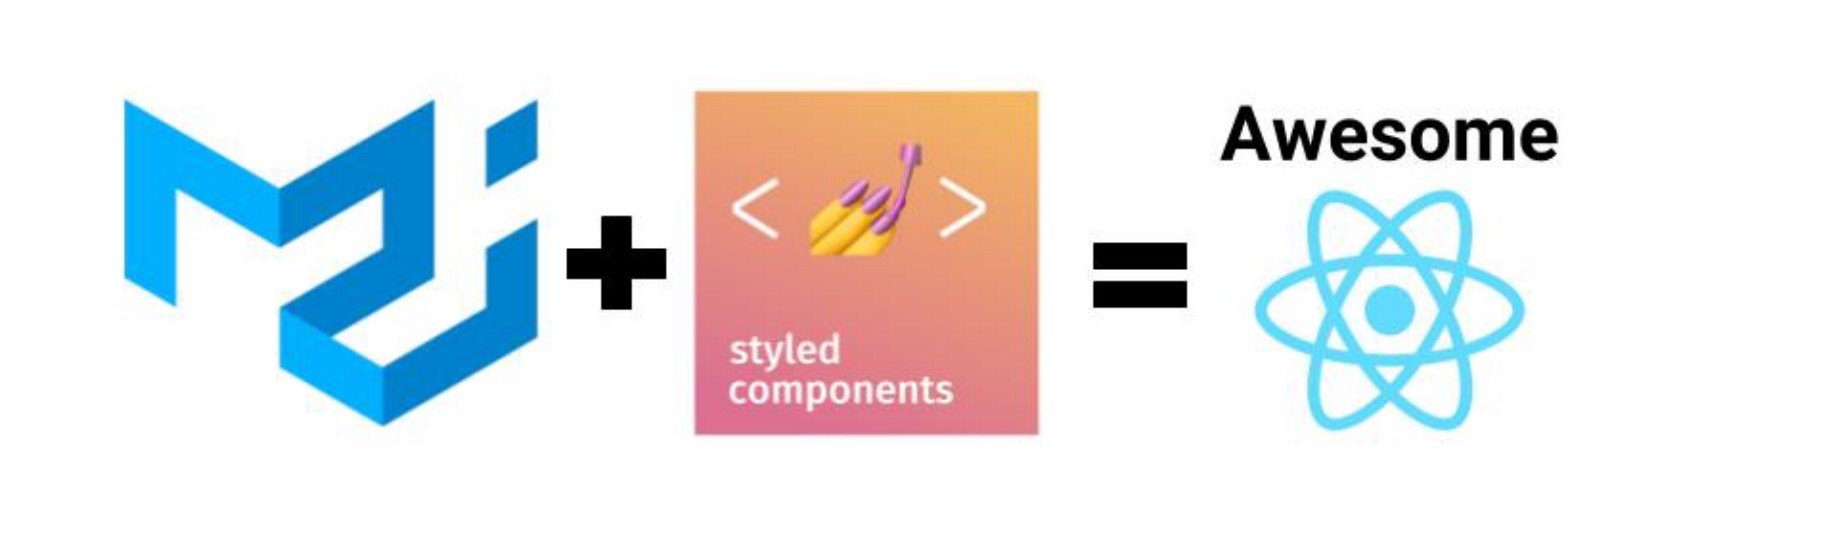 How to use styled components with Material UI in a React app